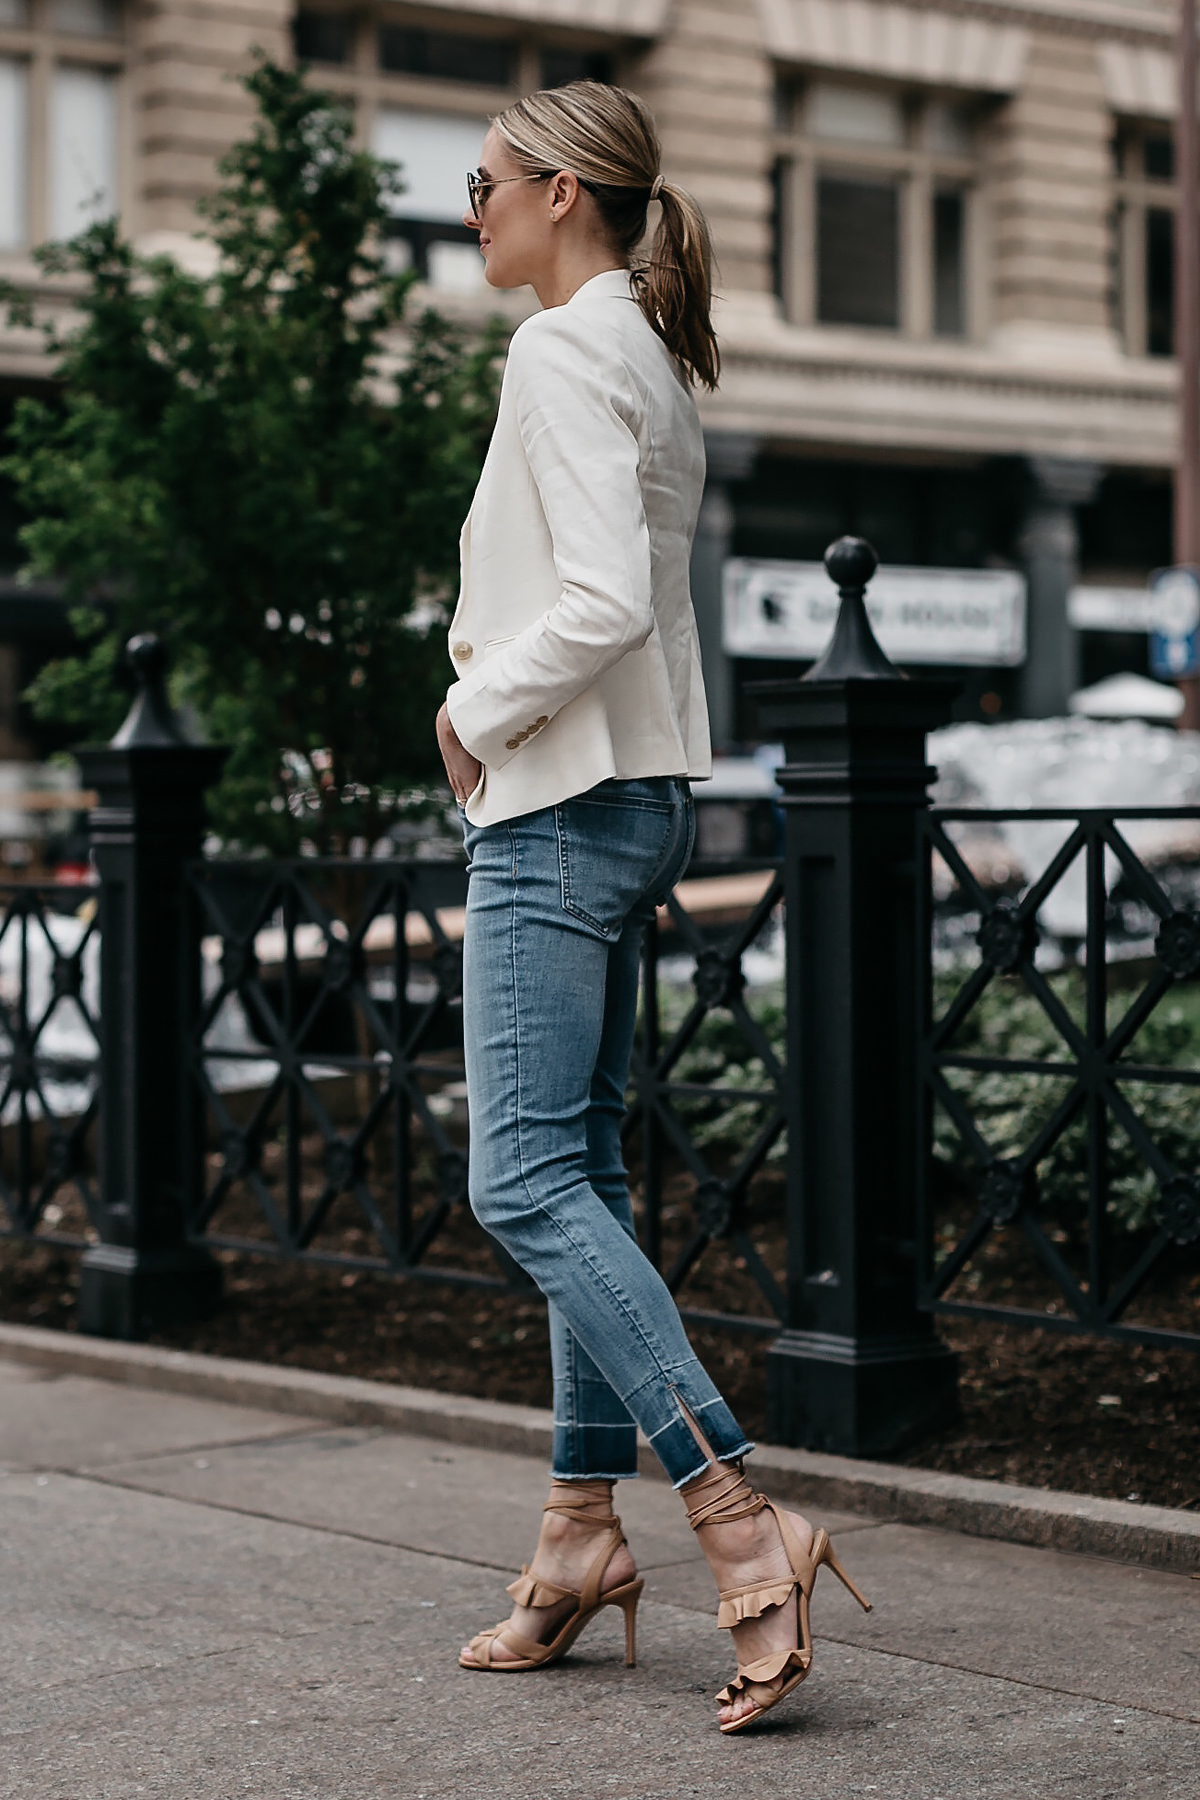 Blonde Woman Wearing Ann Taylor White Blazer Raw Hem Skinny Jeans Tan Ruffle Lace Up Sandals Fashion Jackson Dallas Blogger Fashion Blogger Street Style